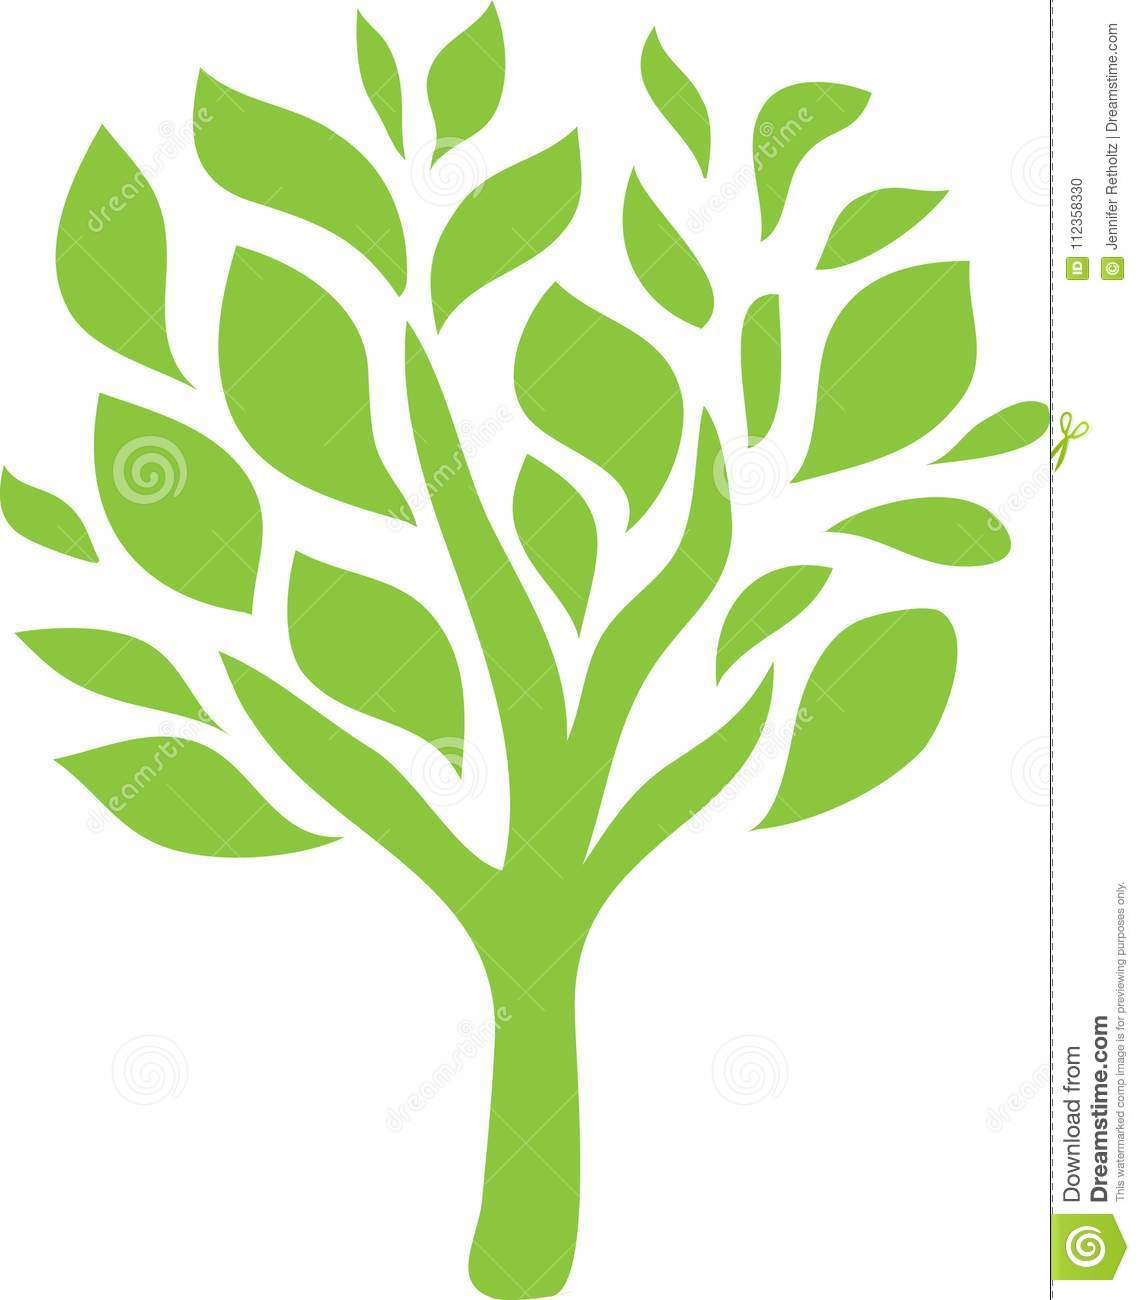 Green Tree Logo Line Art stock illustration. Illustration of.